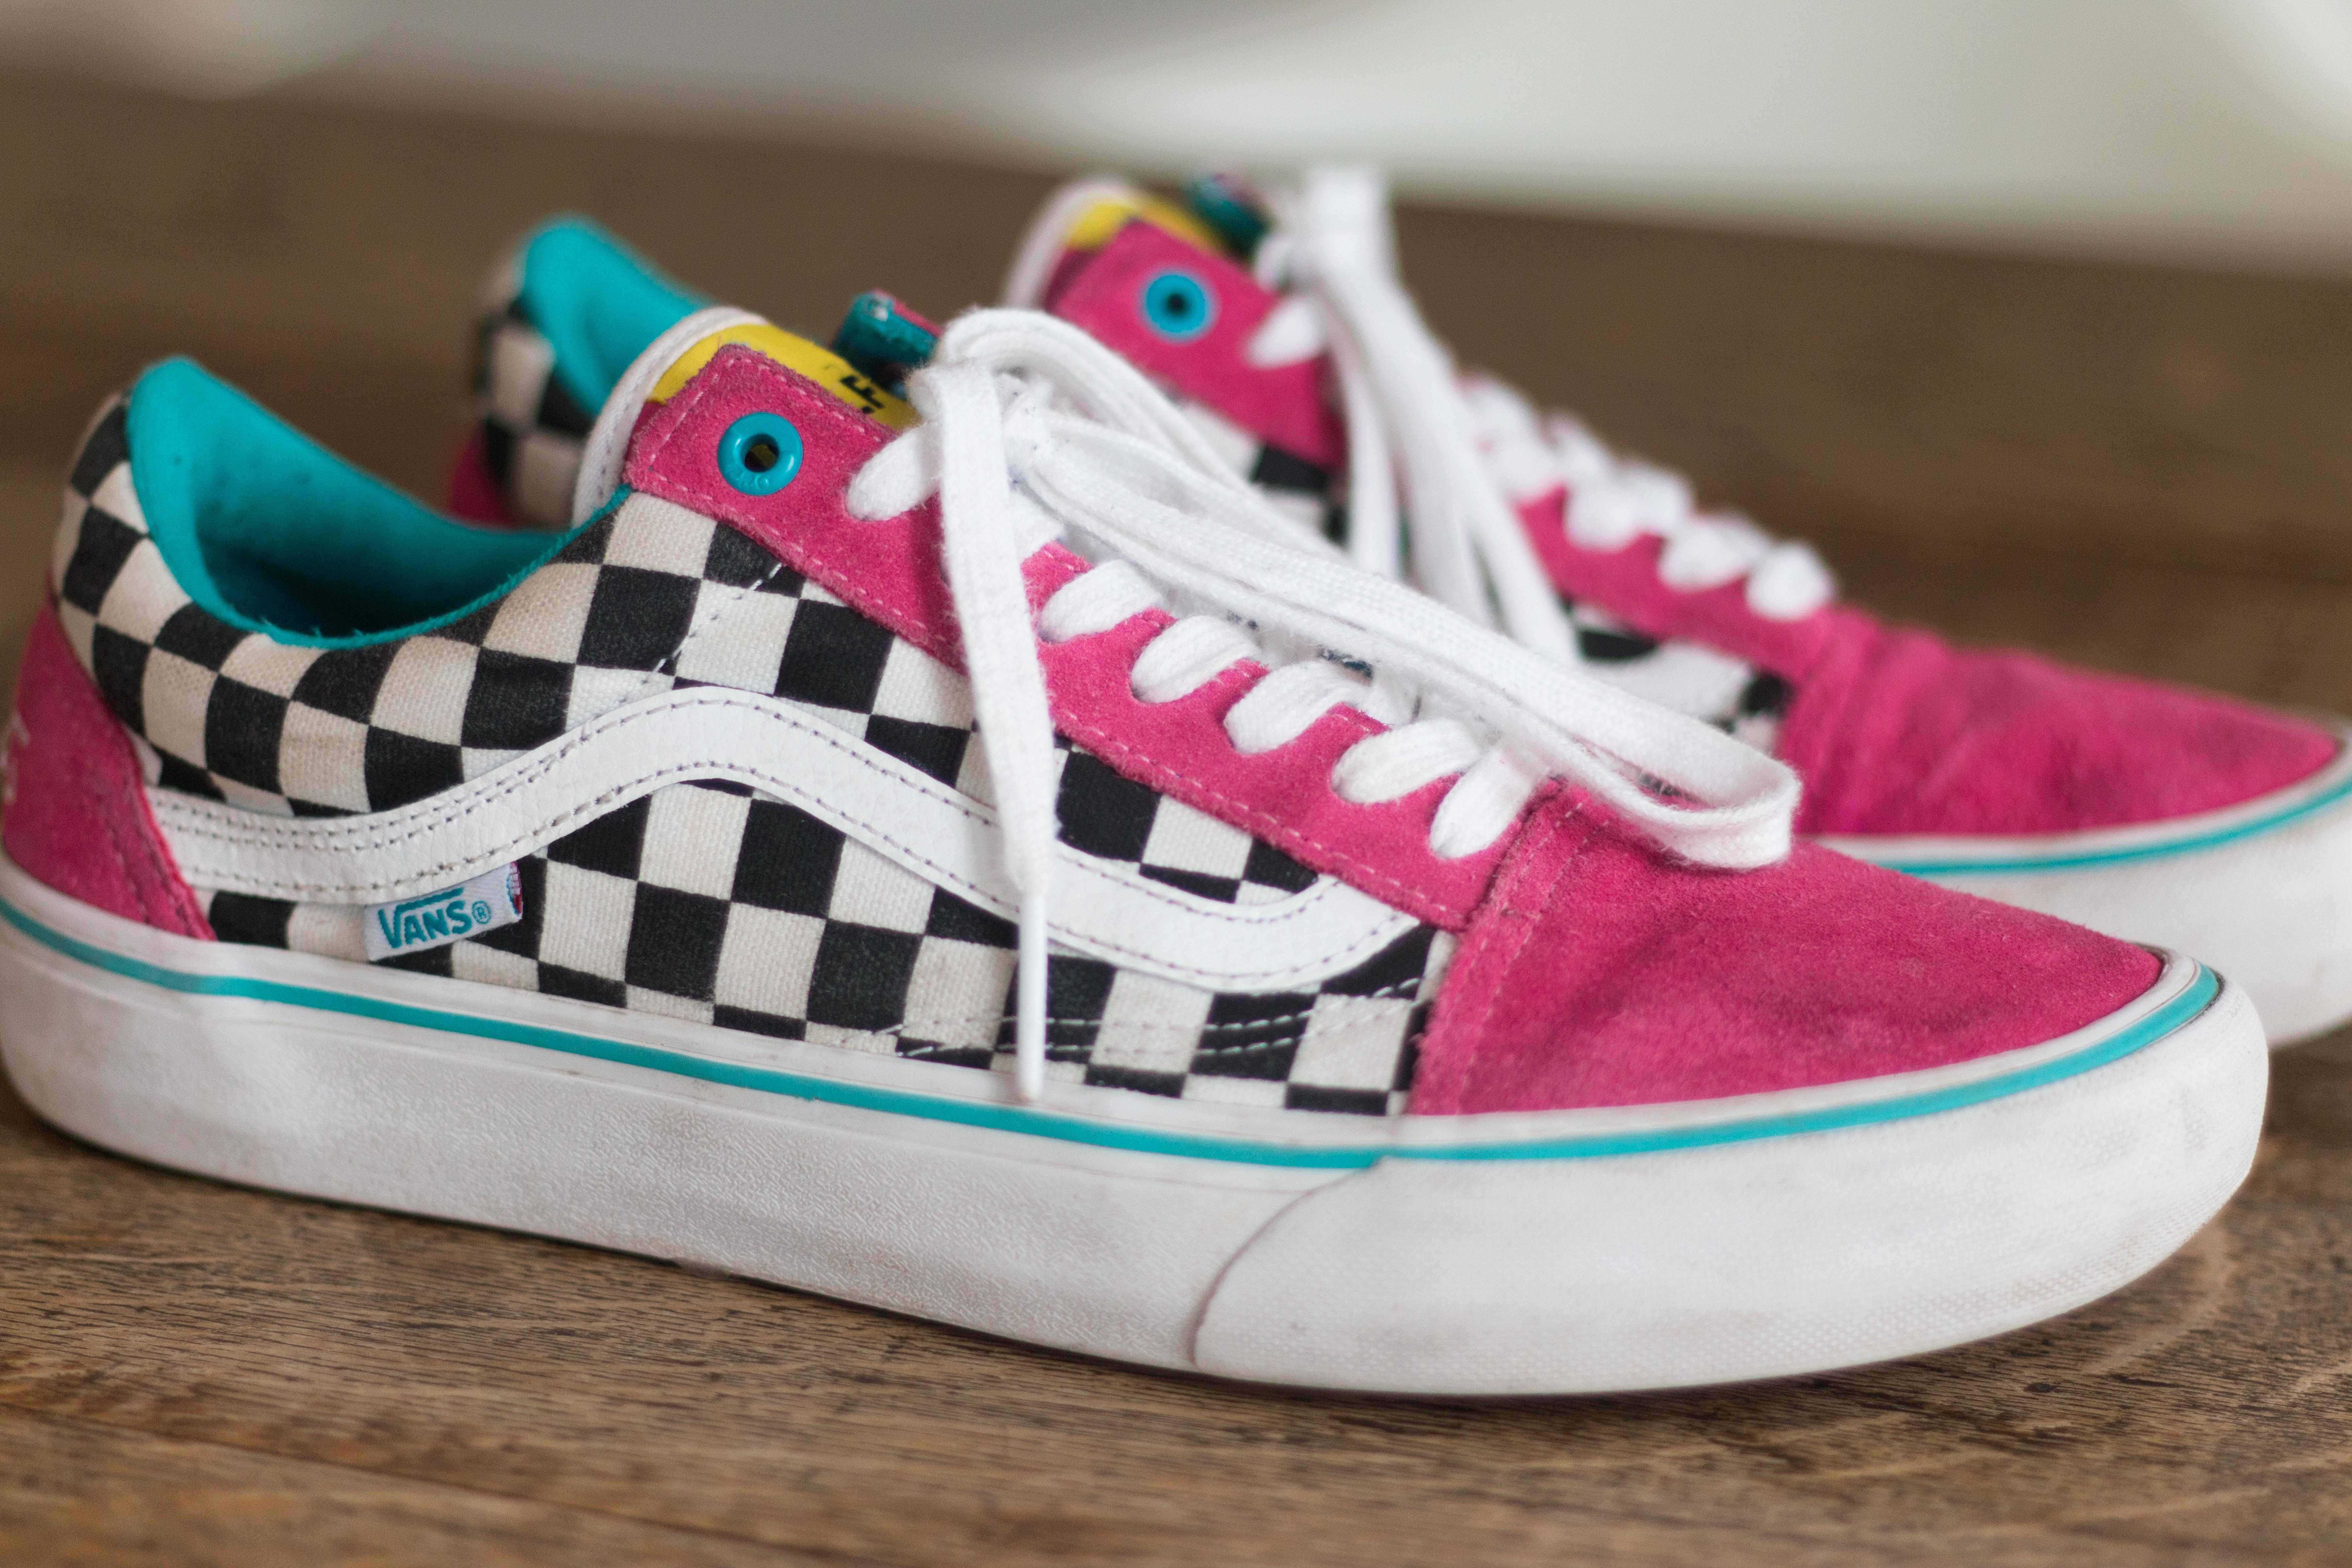 467adbbe776c49 Golf Wang Vans Old Skool Pro Shoes X Golf Wang (blue pink white ...